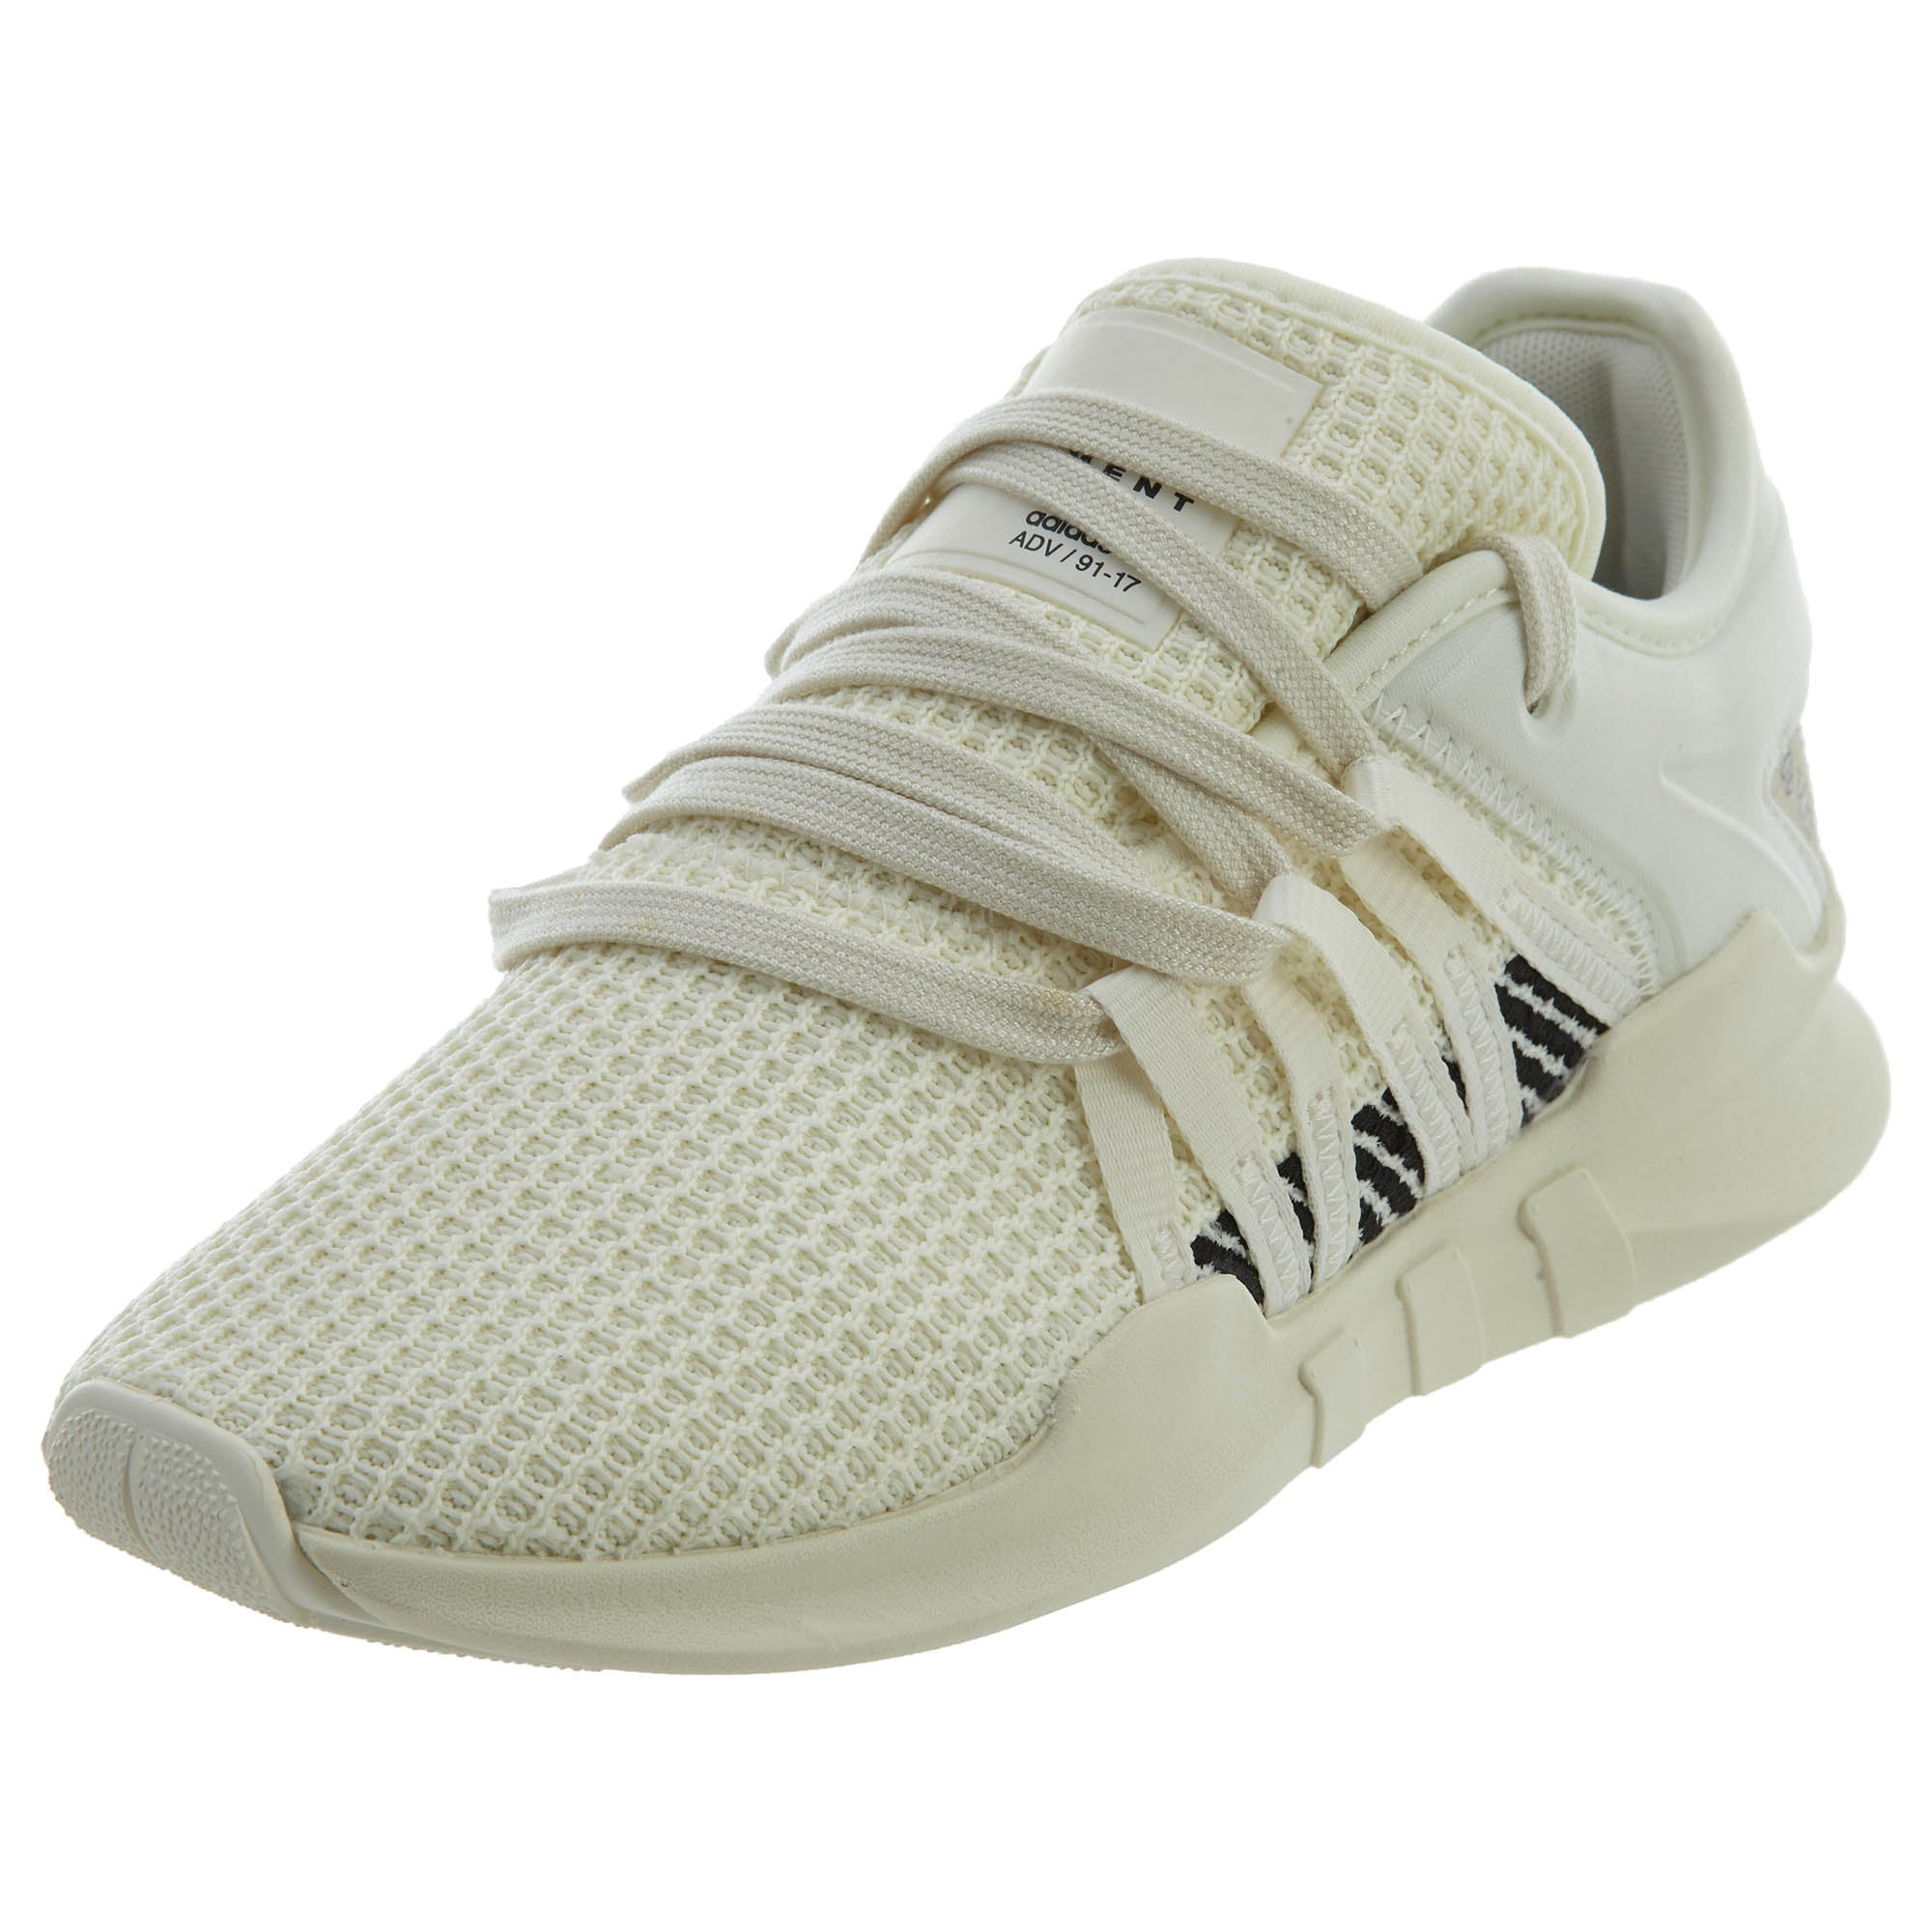 Adidas Eqt Racing Adv Womens Style : By9799